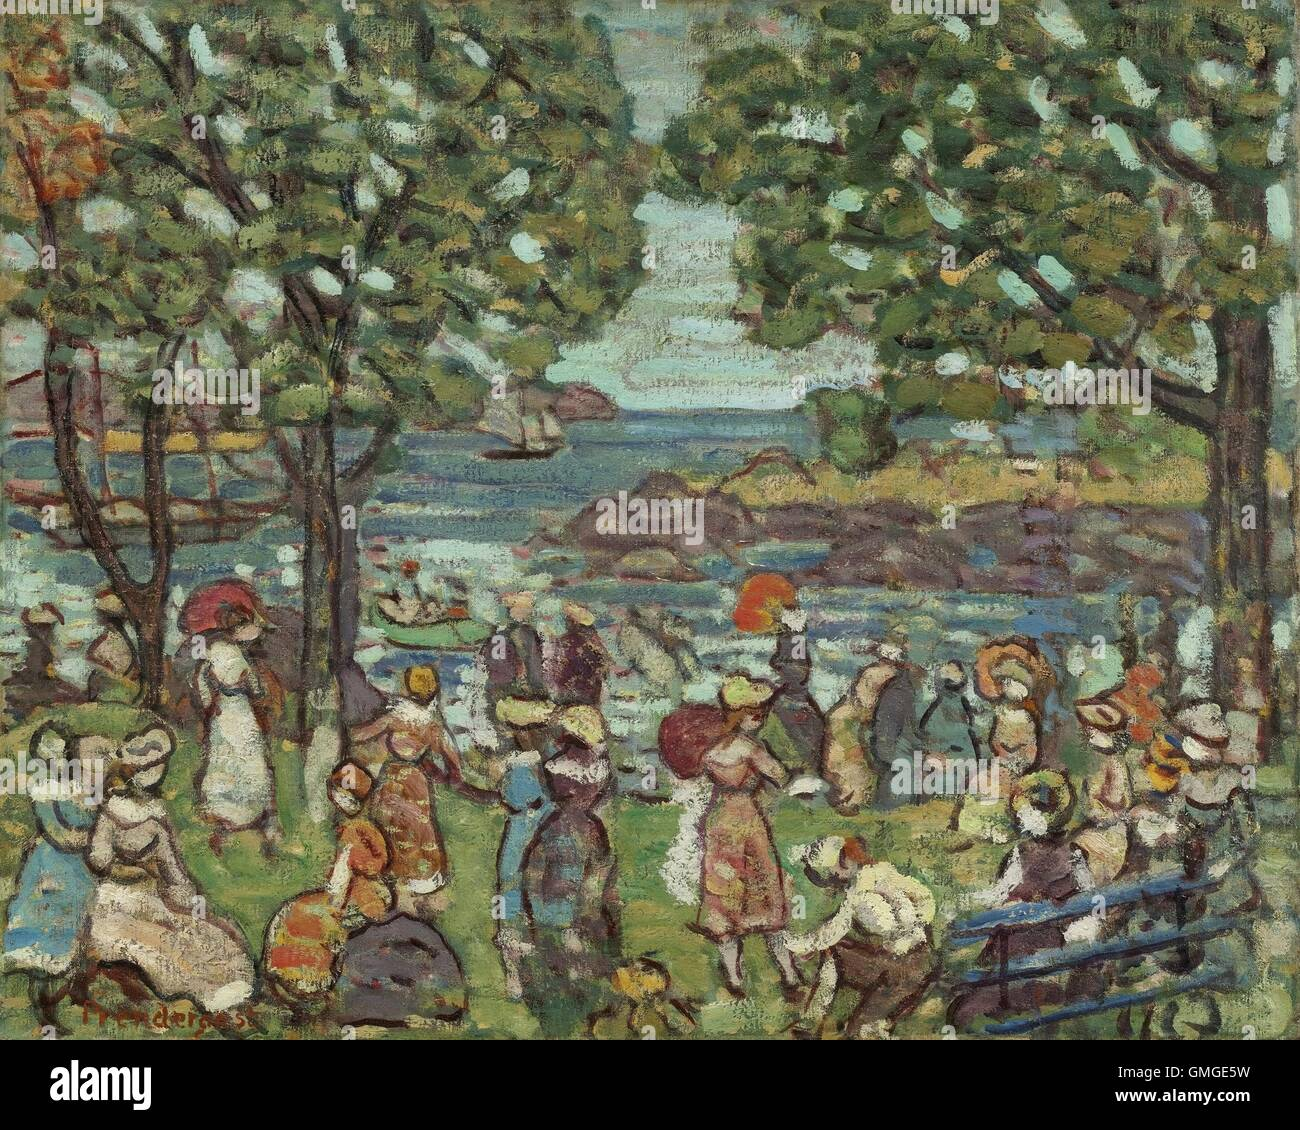 Salem Cove, by Maurice Brazil Prendergast, 1916, American painting, oil on canvas. In 1907 he returned to Paris Stock Photo